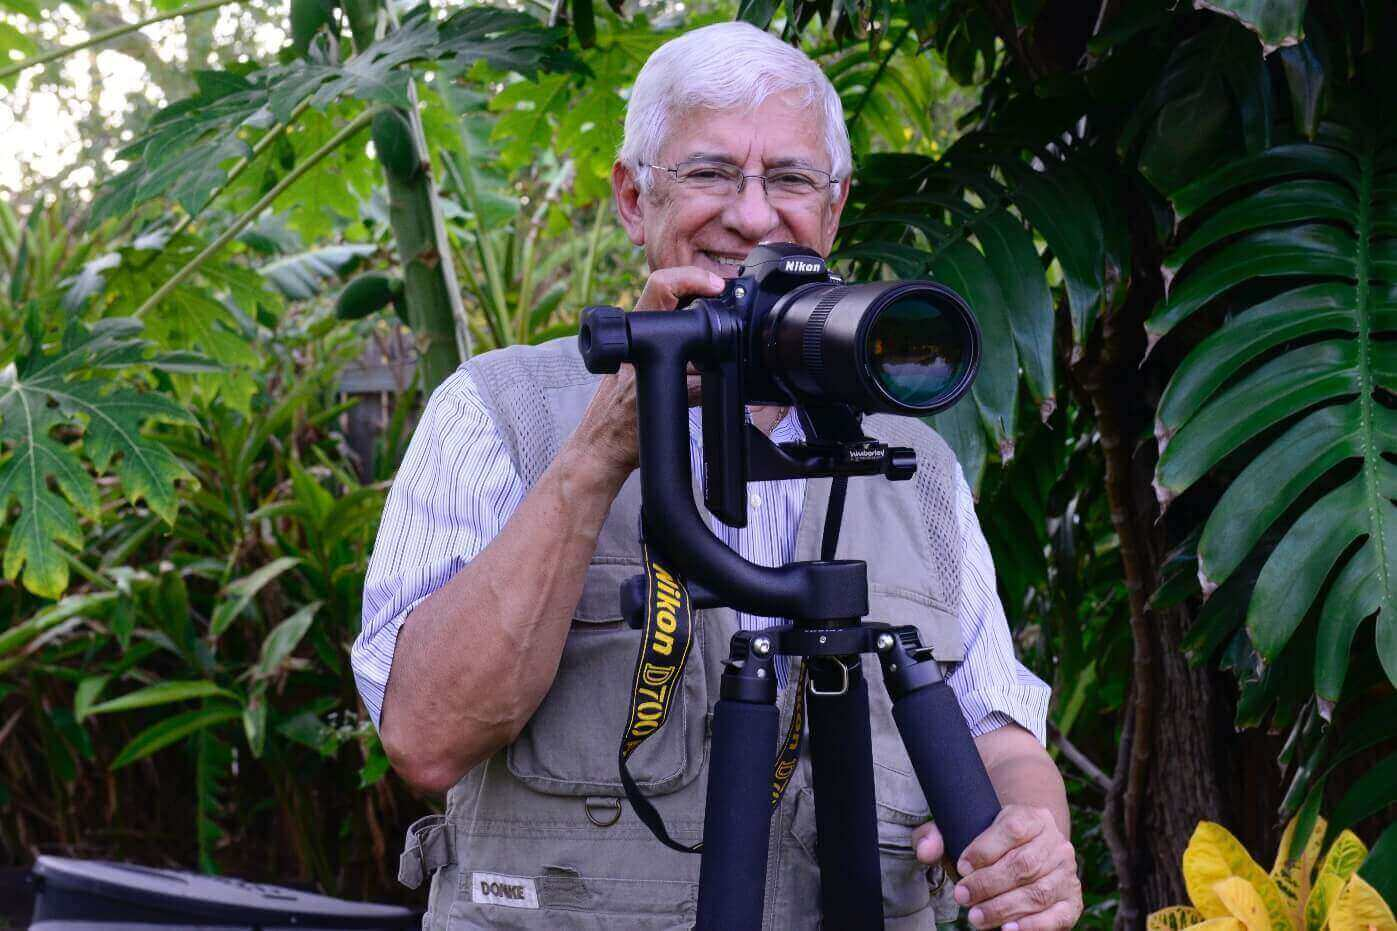 Luis A Materón, Ph.D. <br>Microbiologist and Photographer